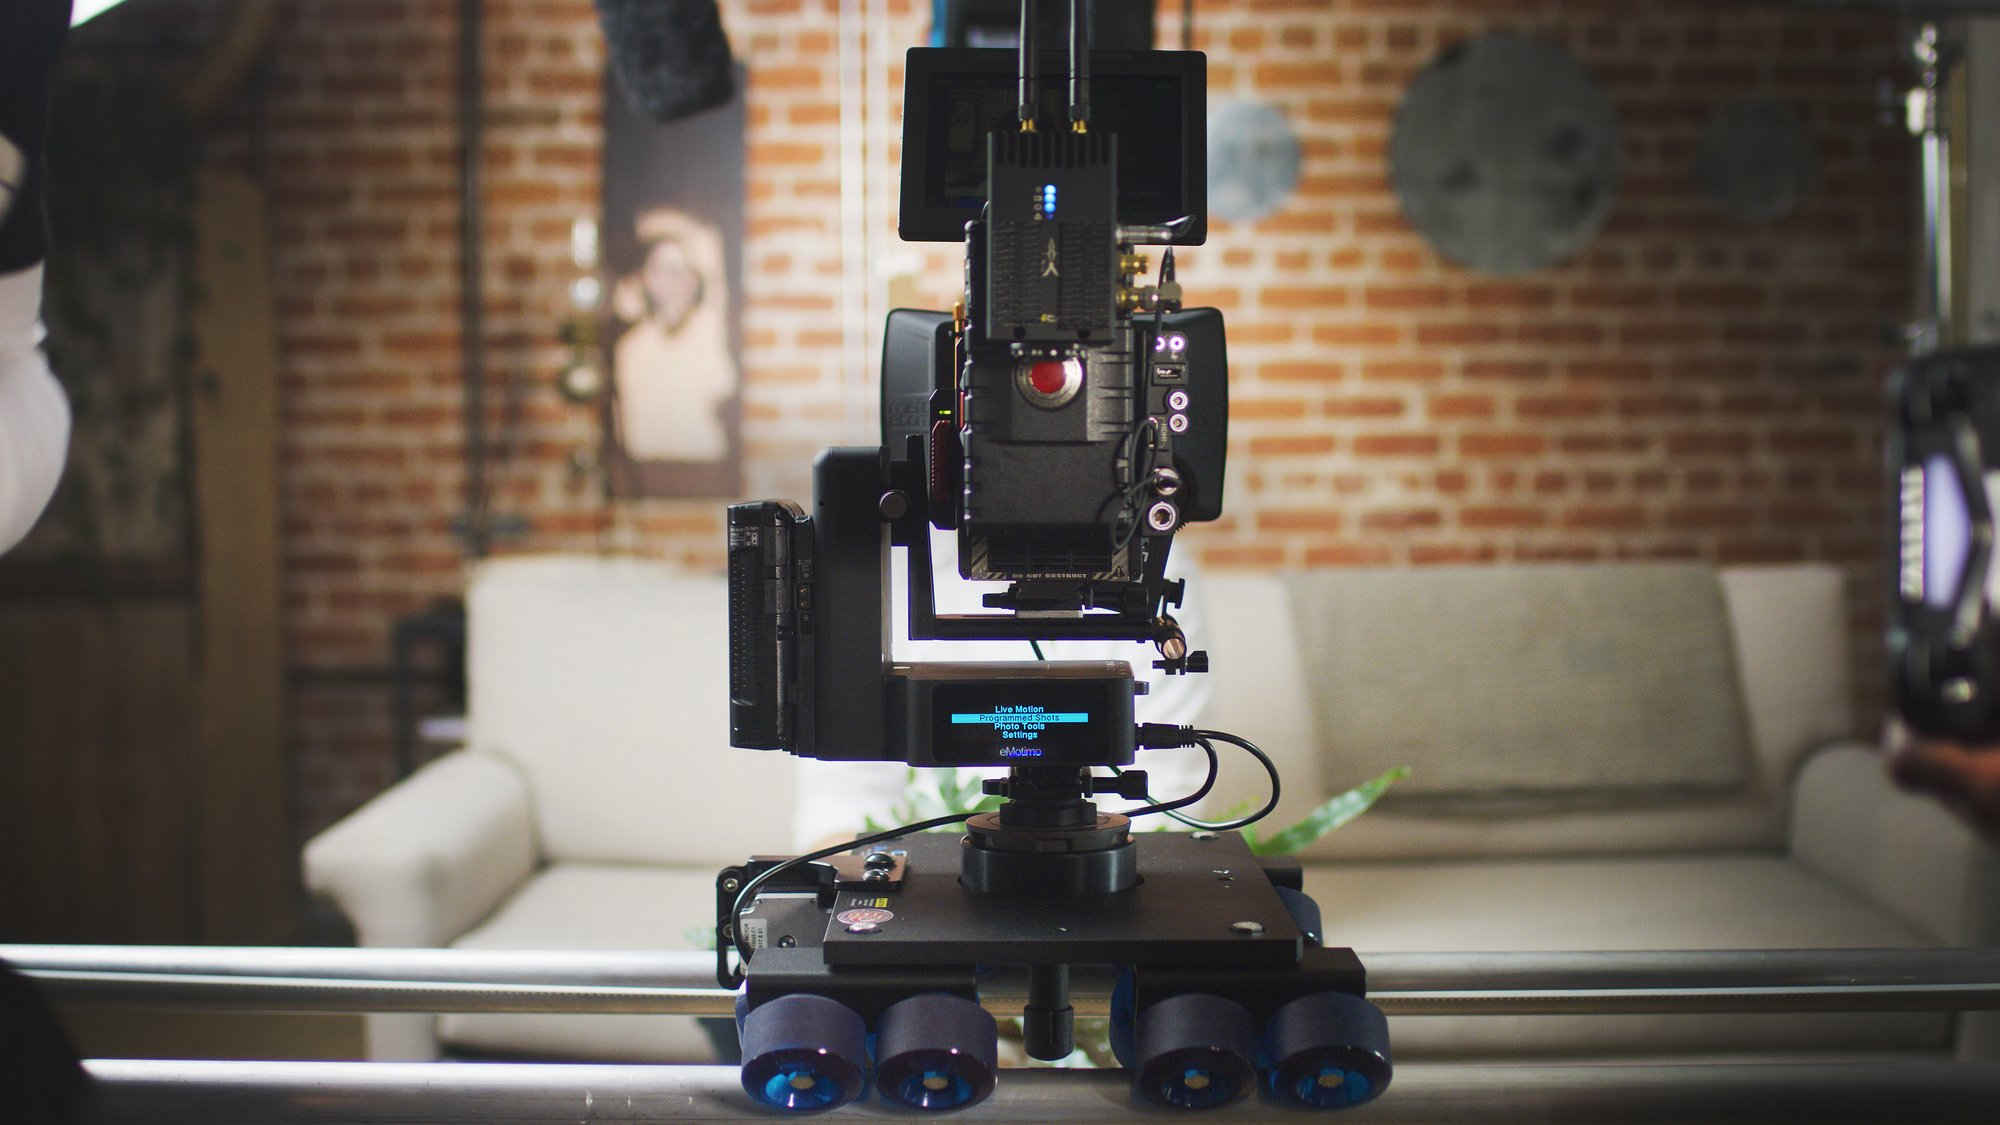 eMotimo motion control kit motorizes your Dana Dolly for a